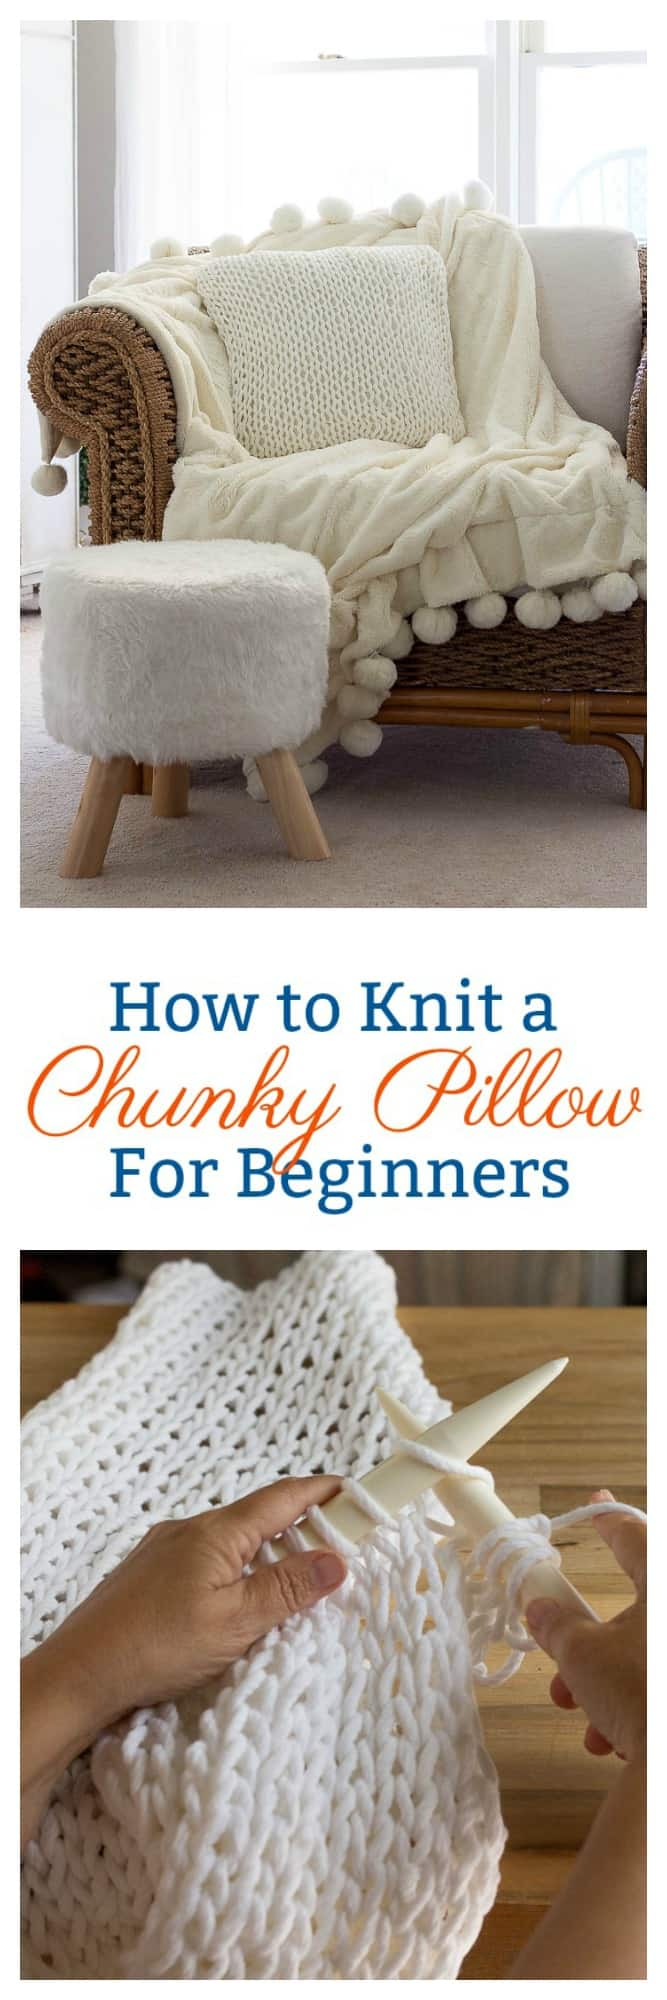 How to Knit a Chunky Pillow for Beginners